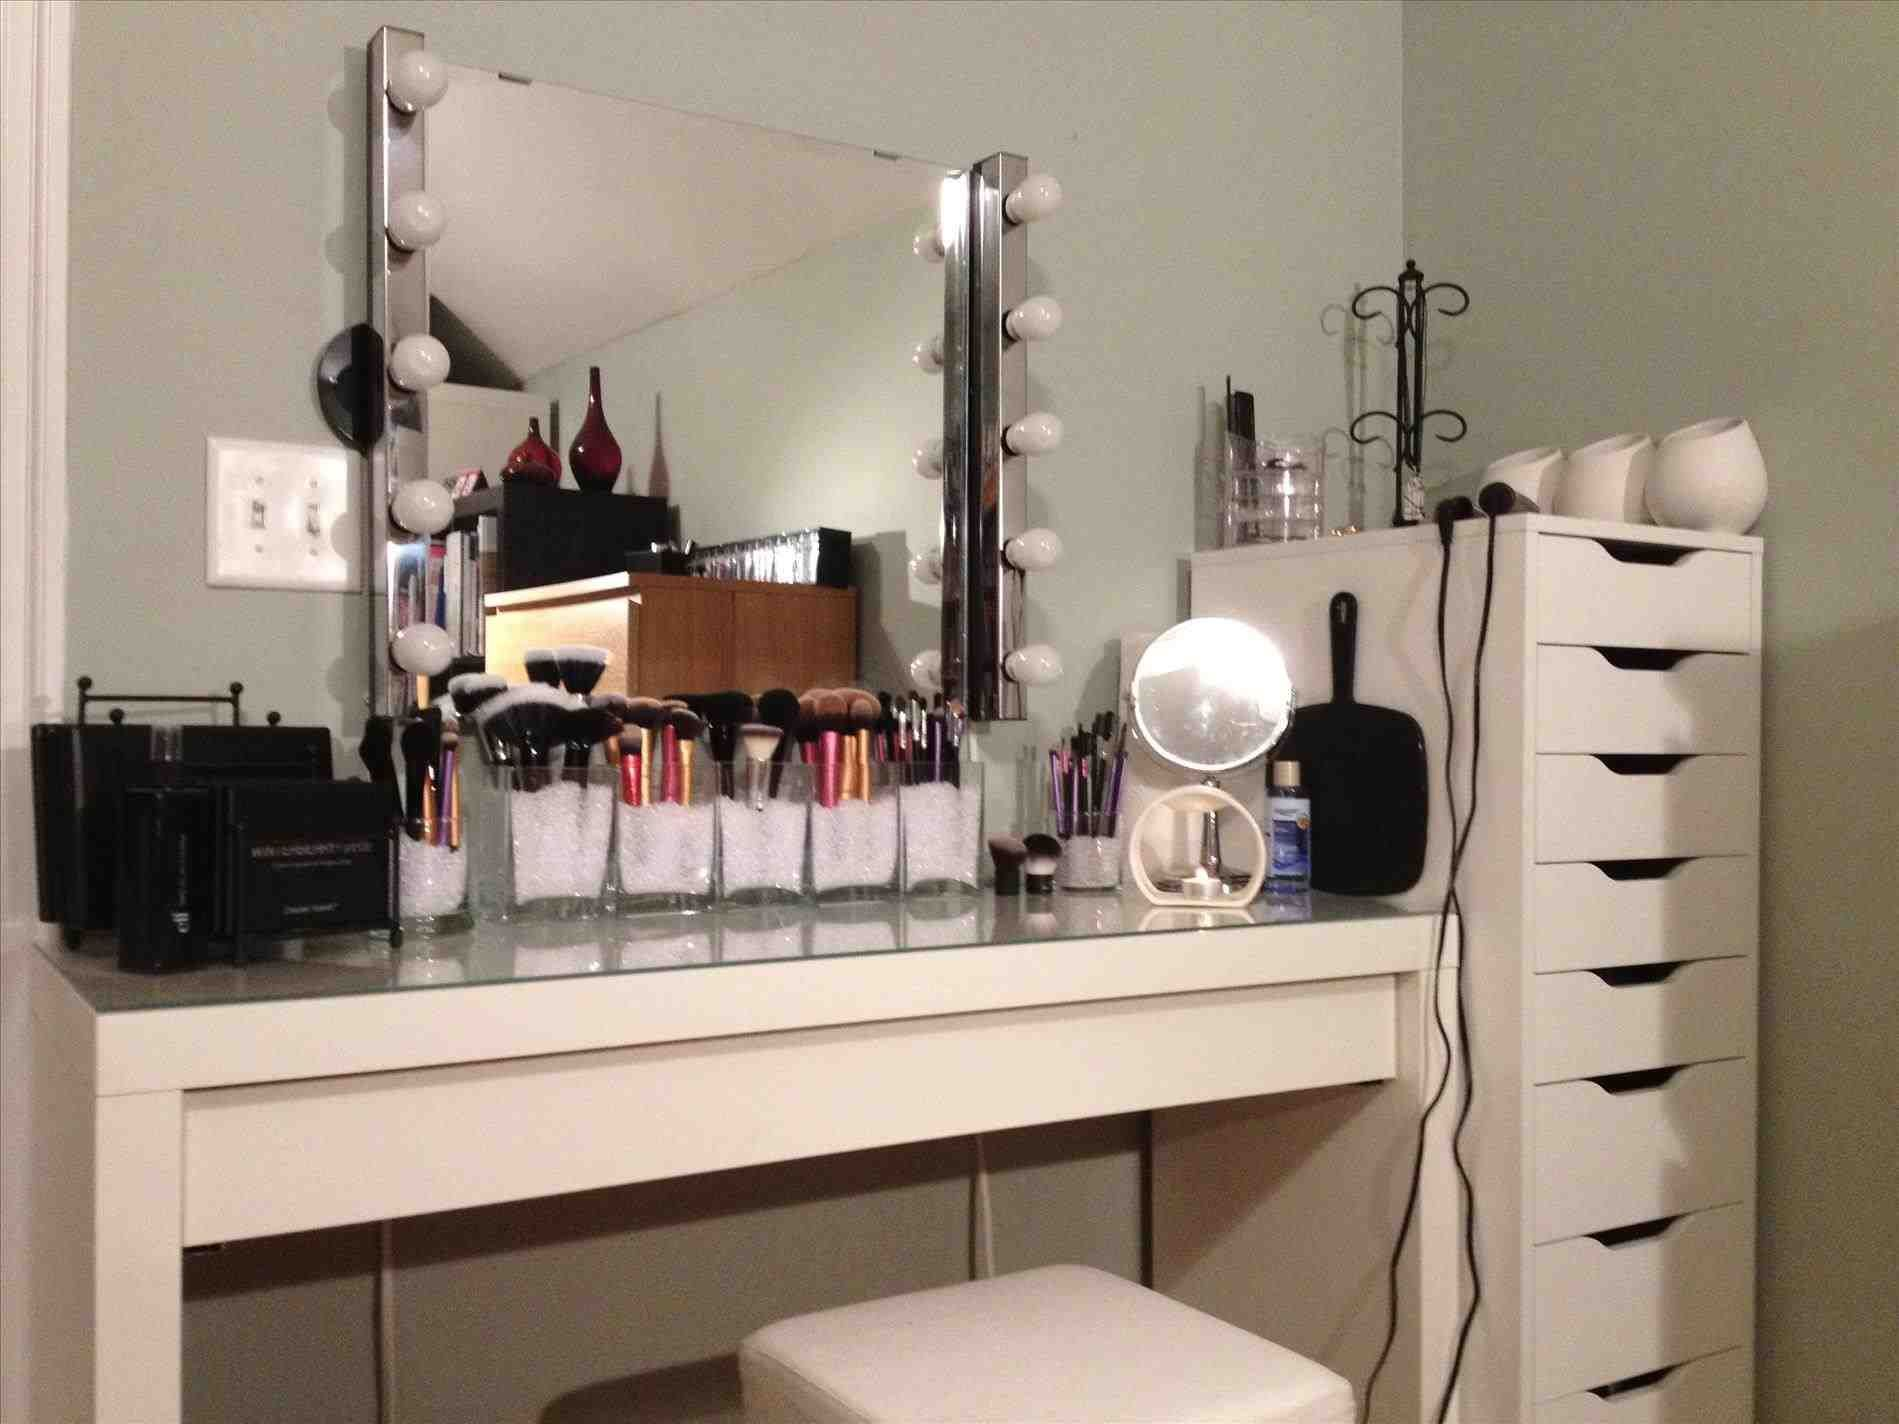 This ikea alex vanity black visit entermpfo home designs